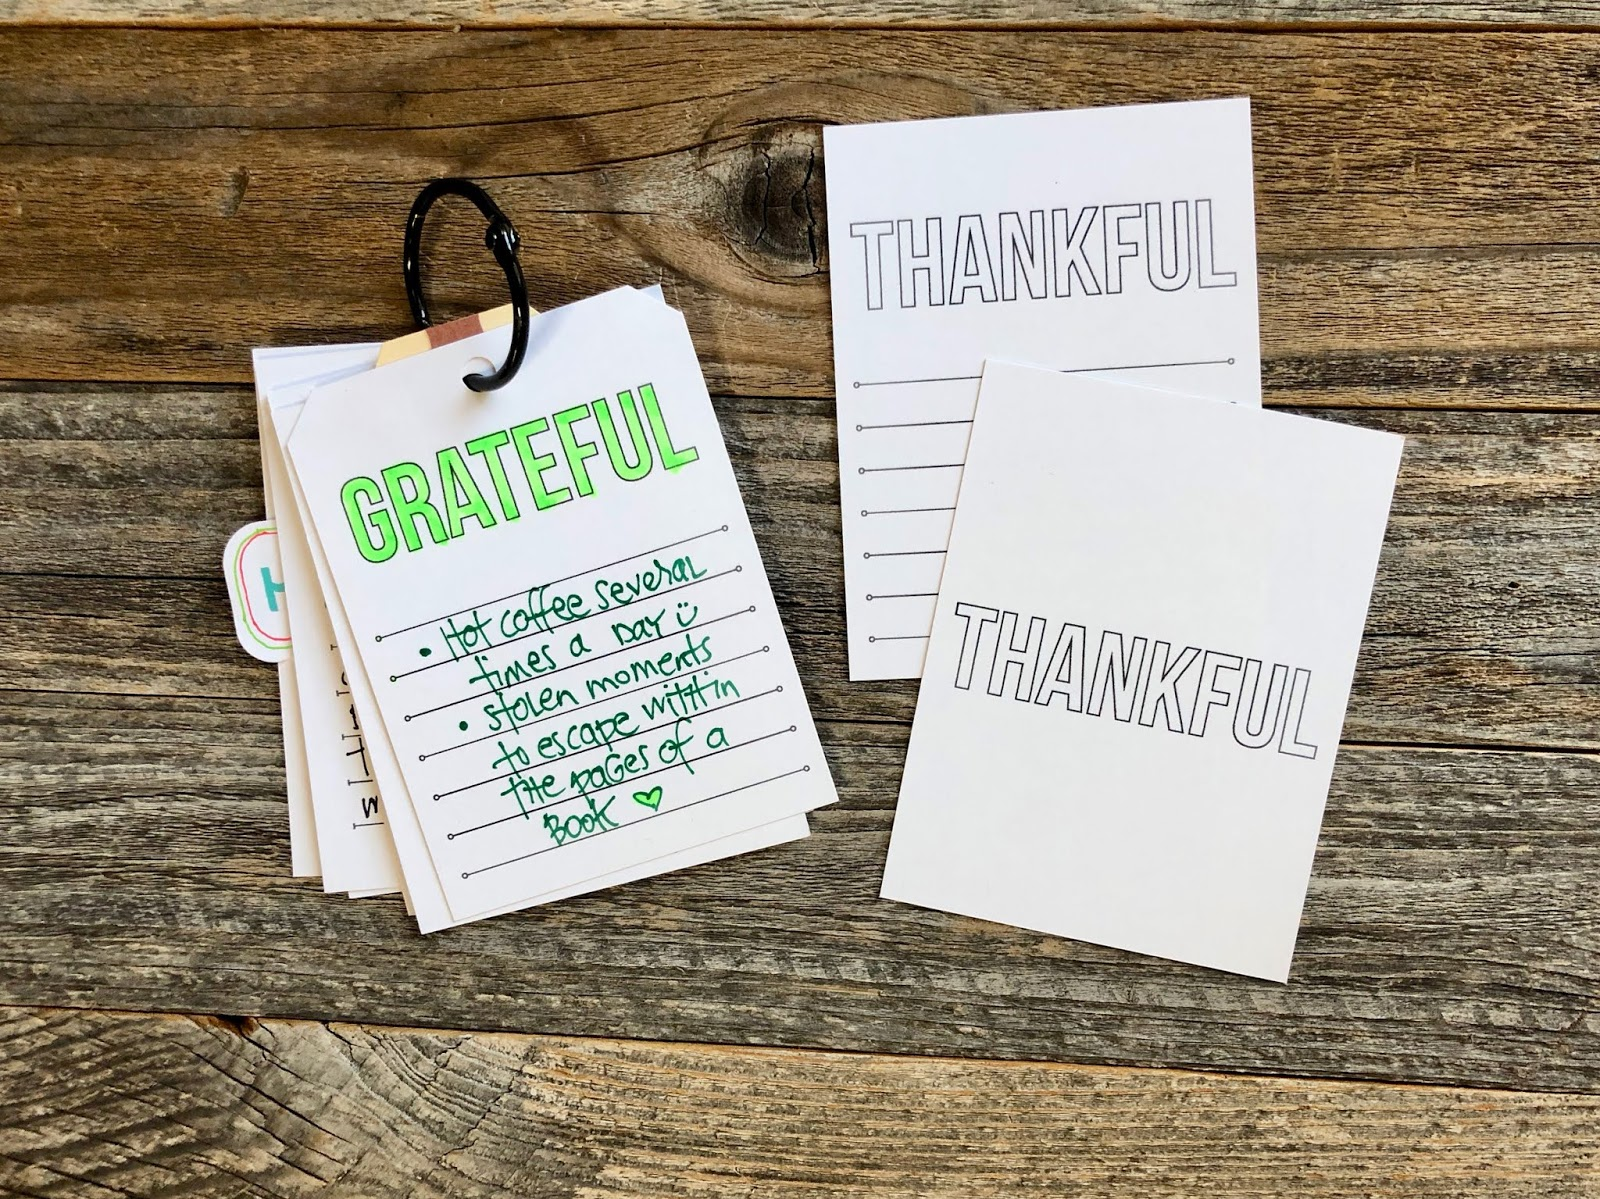 #Gratitude Journal #Gratitude #Grateful #Journal  #365 Things #Journaling Cards #Pocket Pages #Digital Download  #Things I Am Grateful For